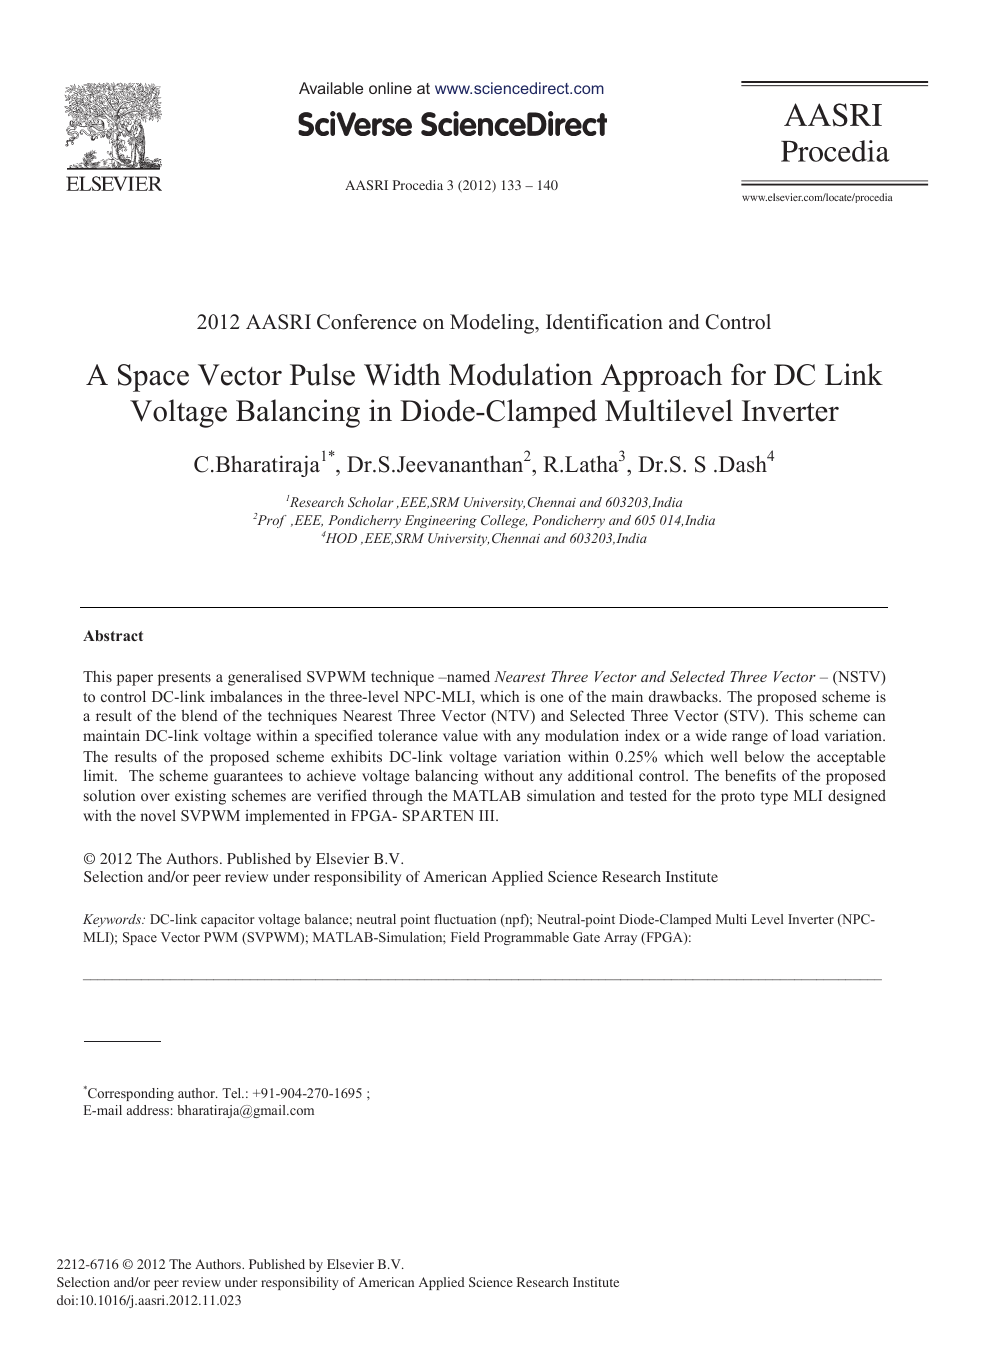 A Space Vector Pulse Width Modulation Approach for DC Link Voltage